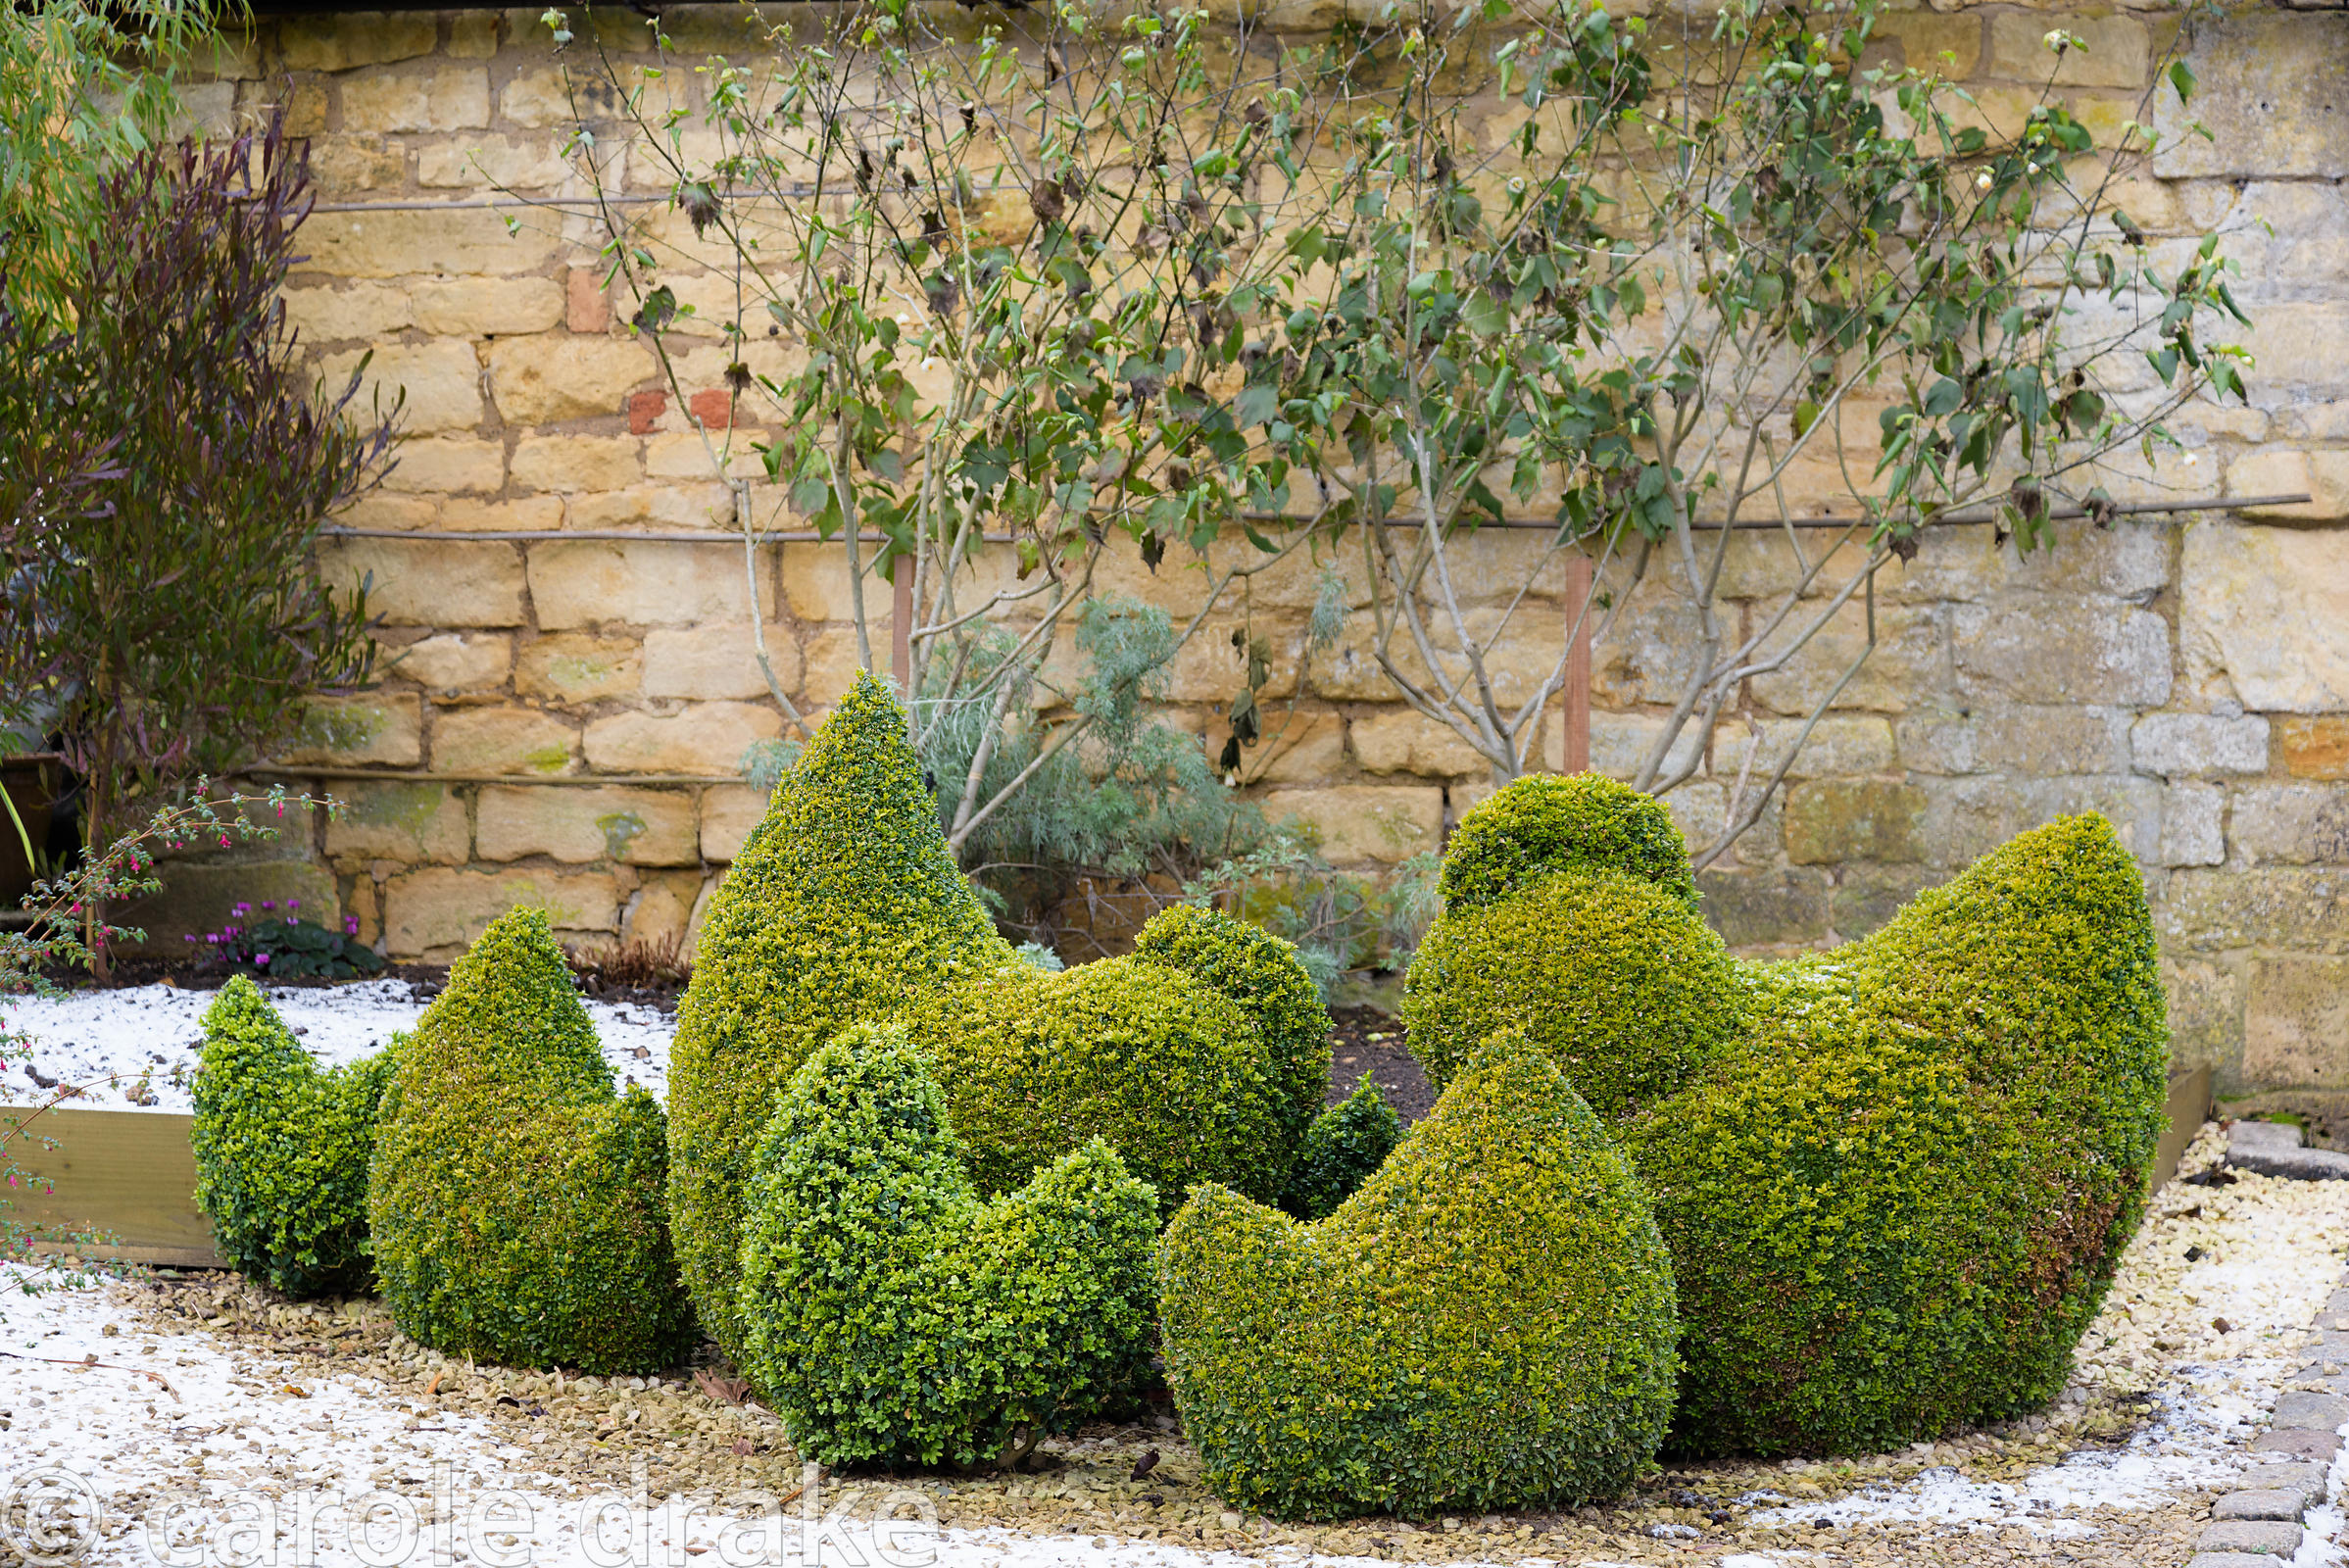 A group of topiary box hens at Bourton House garden in the Cotswolds in January